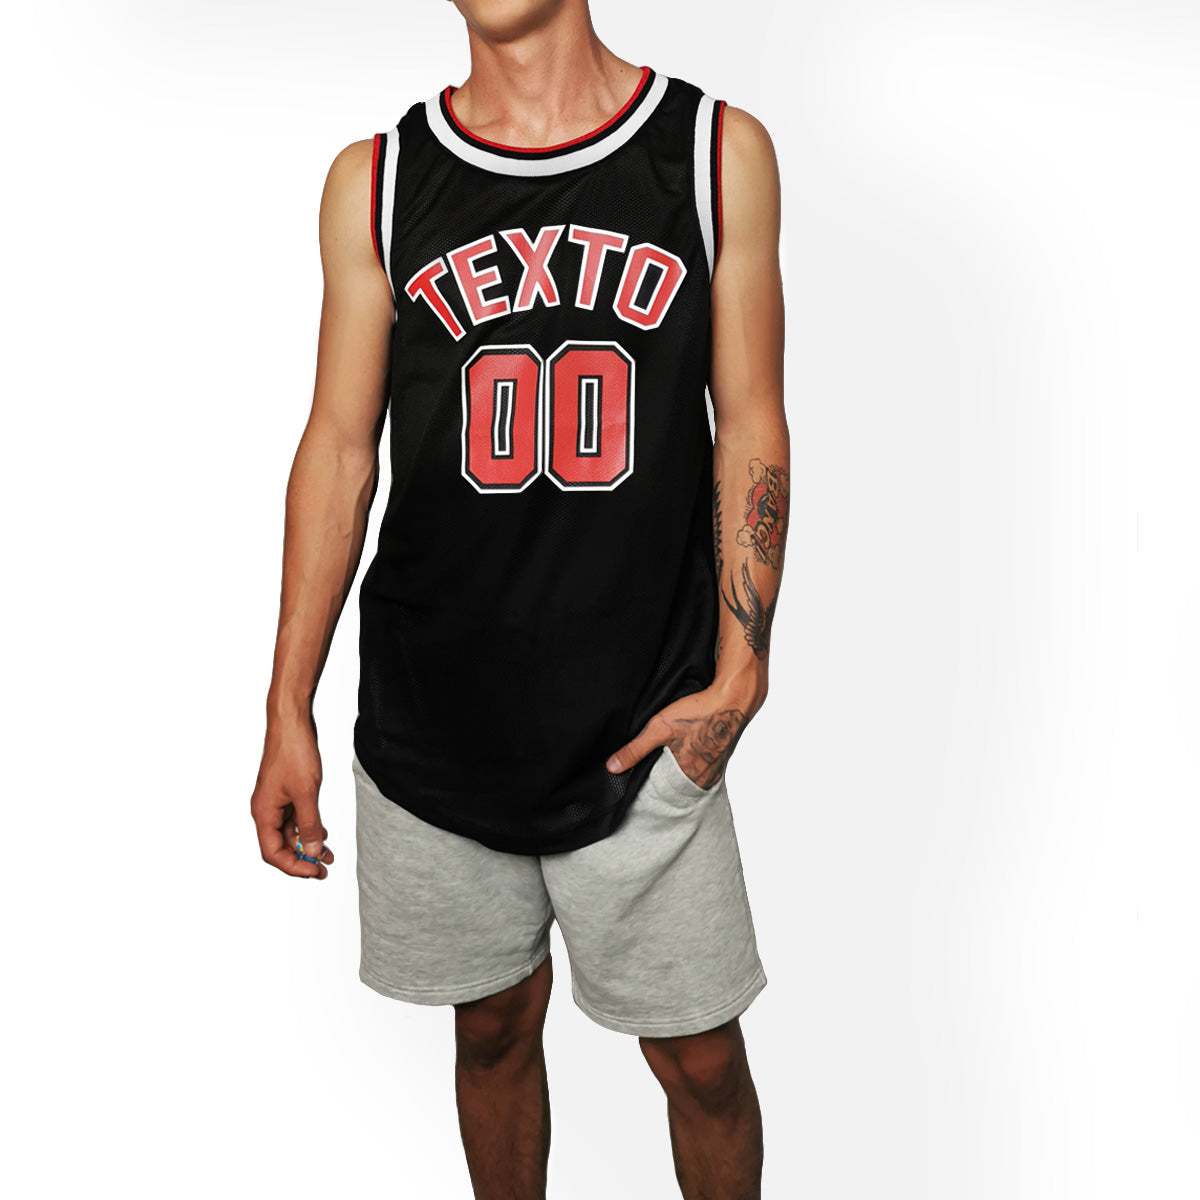 jersey basquetbol personalizable gdl